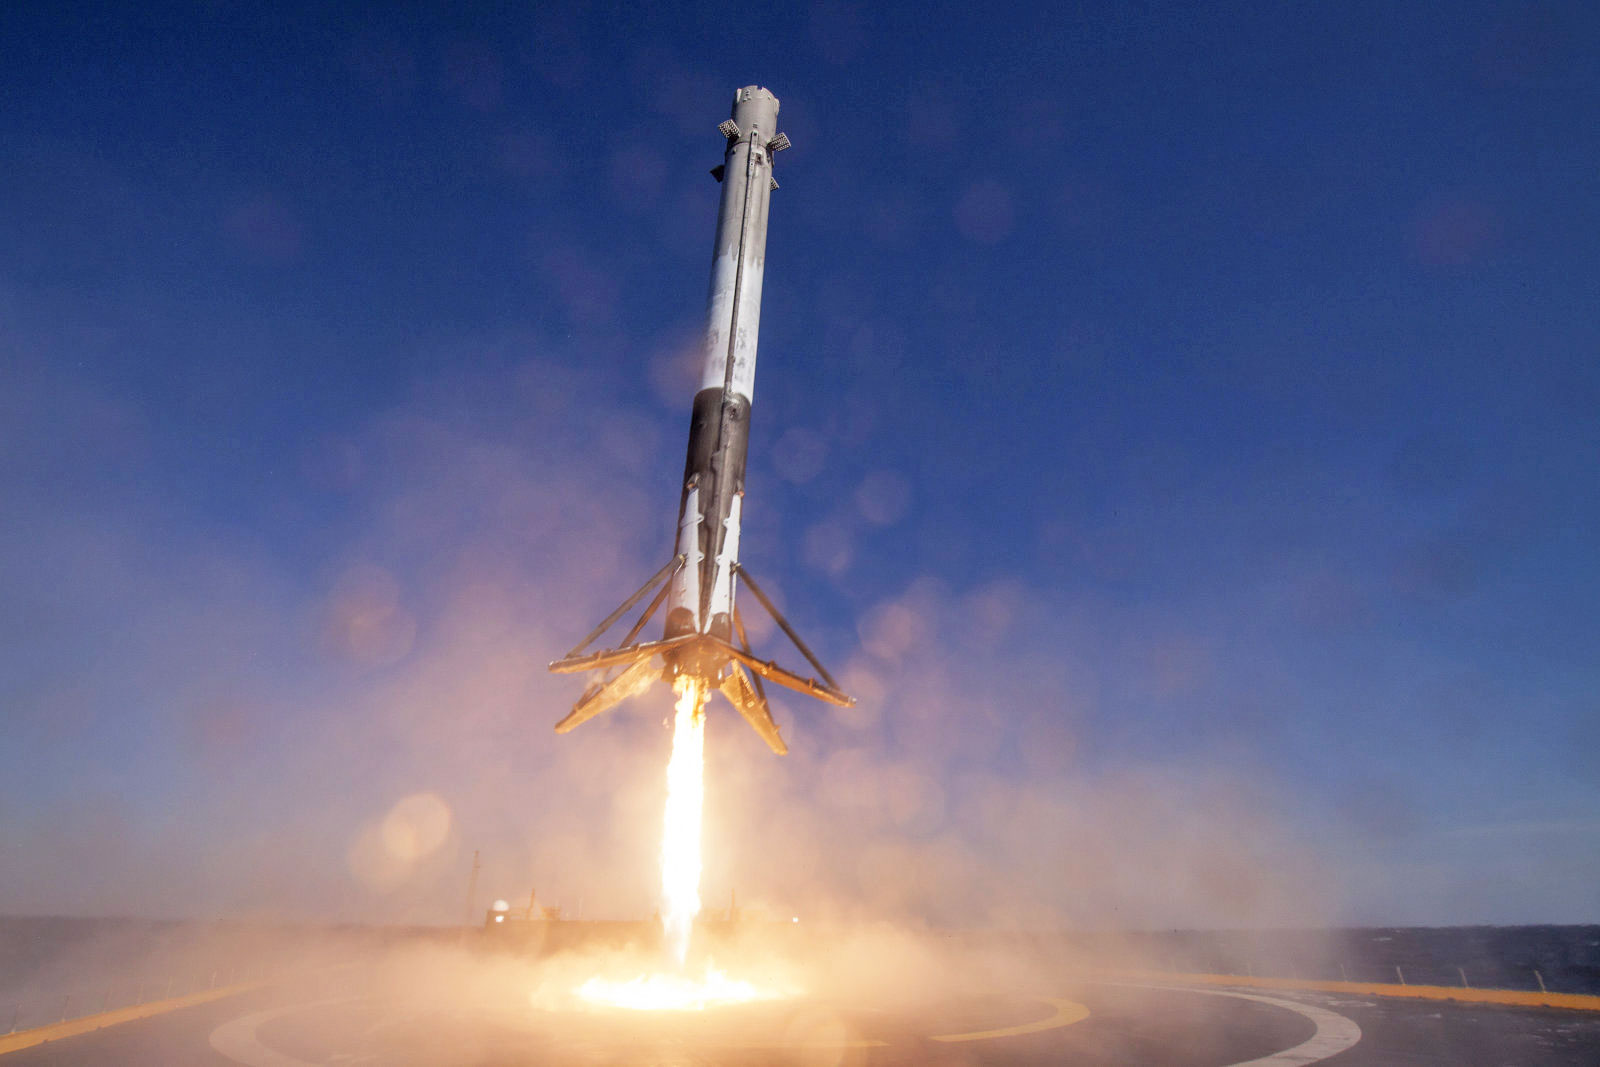 SpaceX releases video of its historic reused rocket landing